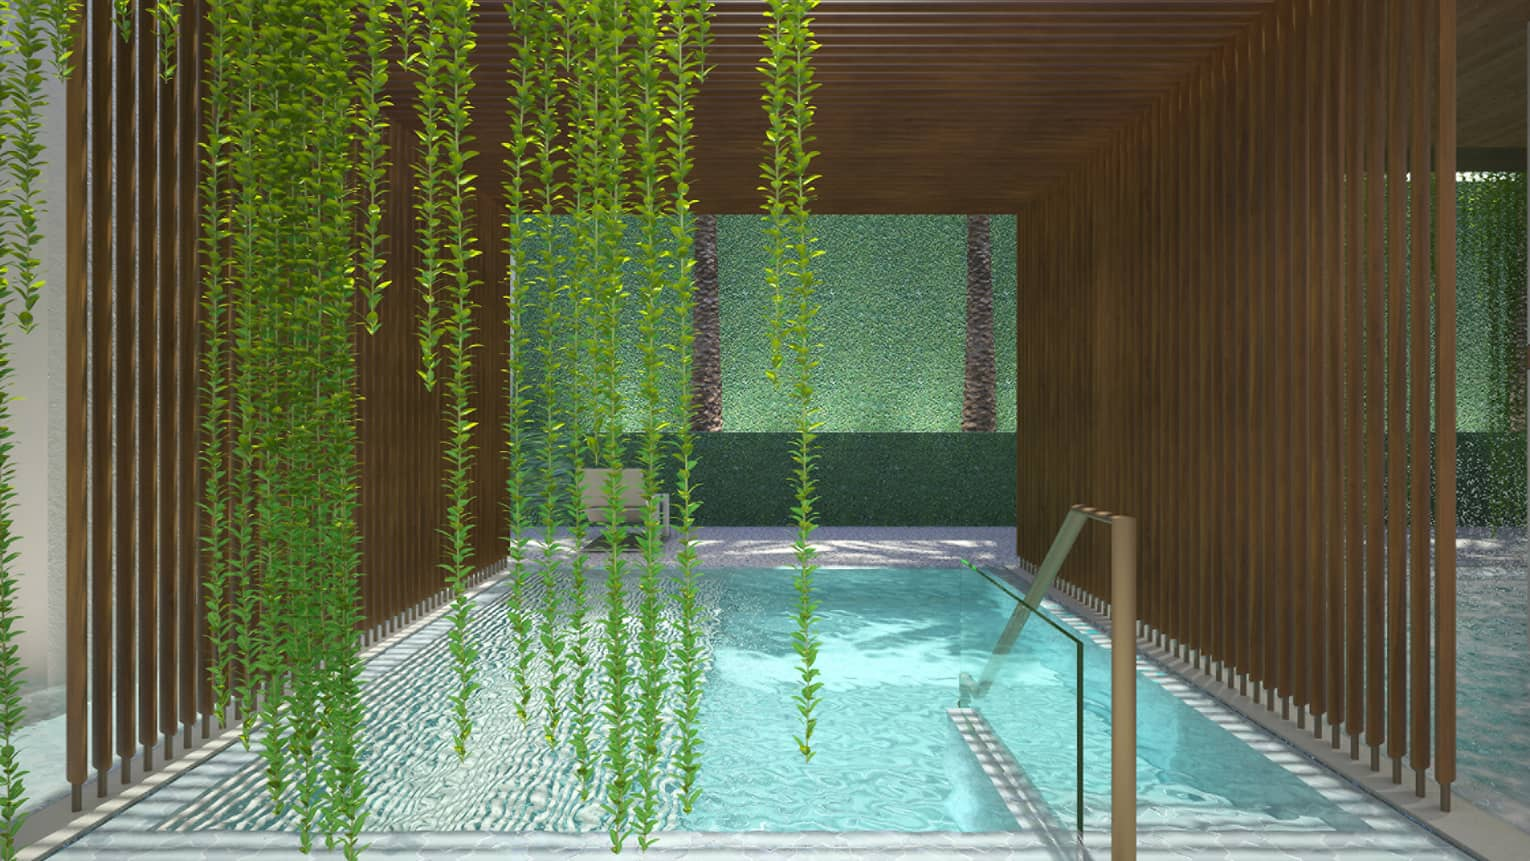 Rendering of lush green vines hanging in front of swimming pool under wood pergola